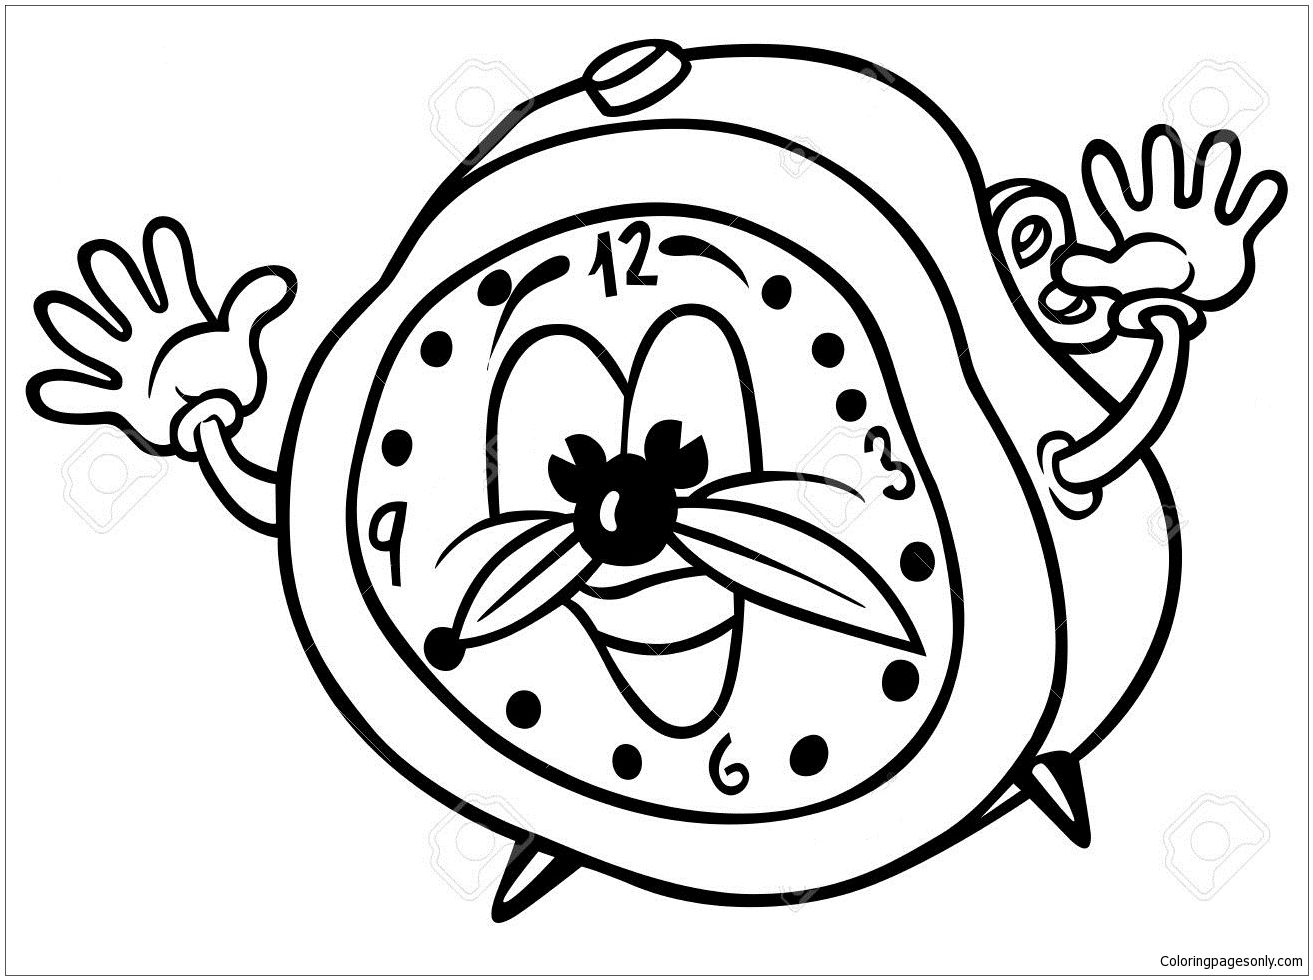 Cartoon Alarm Clock Coloring Page